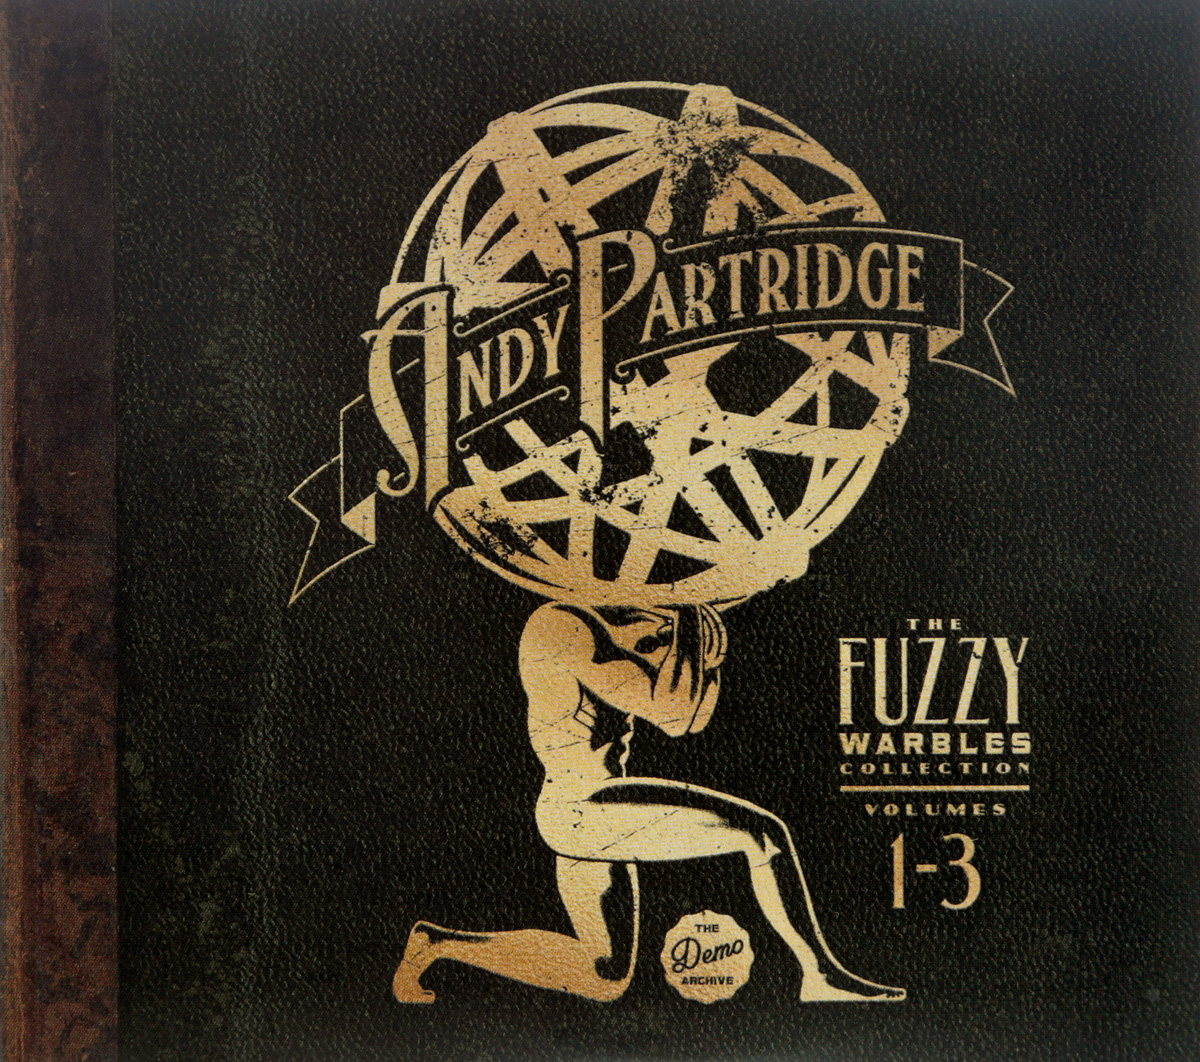 Andrew John Andy Partridge Andy Partridge. Fuzzy Warbles Volume 1-3 (3 CD) long john silver volume 3 the emerald maze